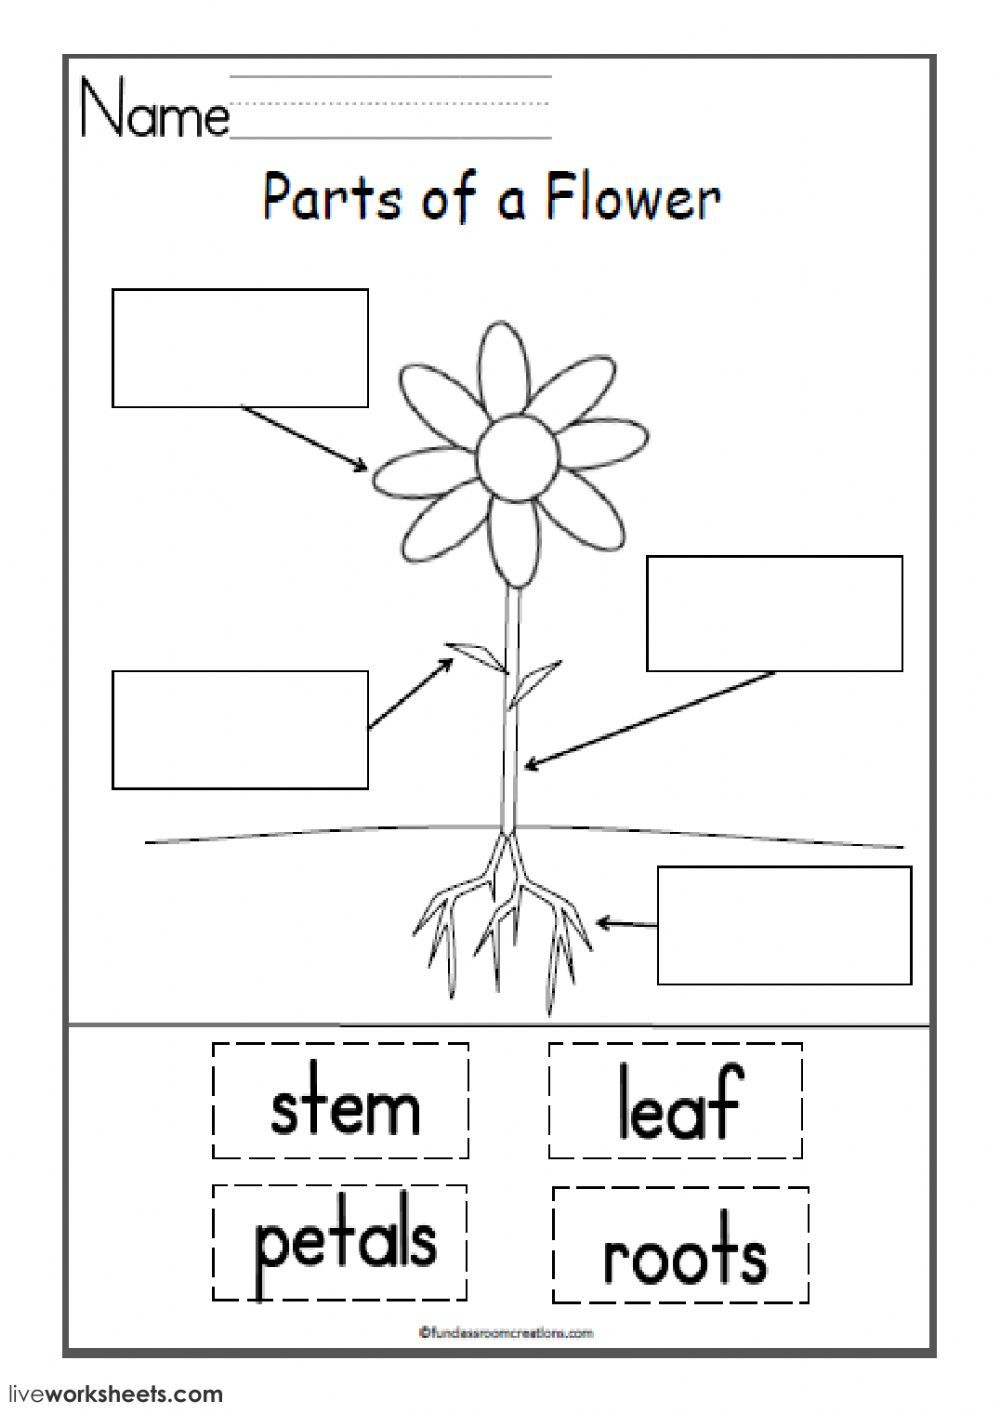 Parts Of The Flower Interactive And Downloadable Worksheet You